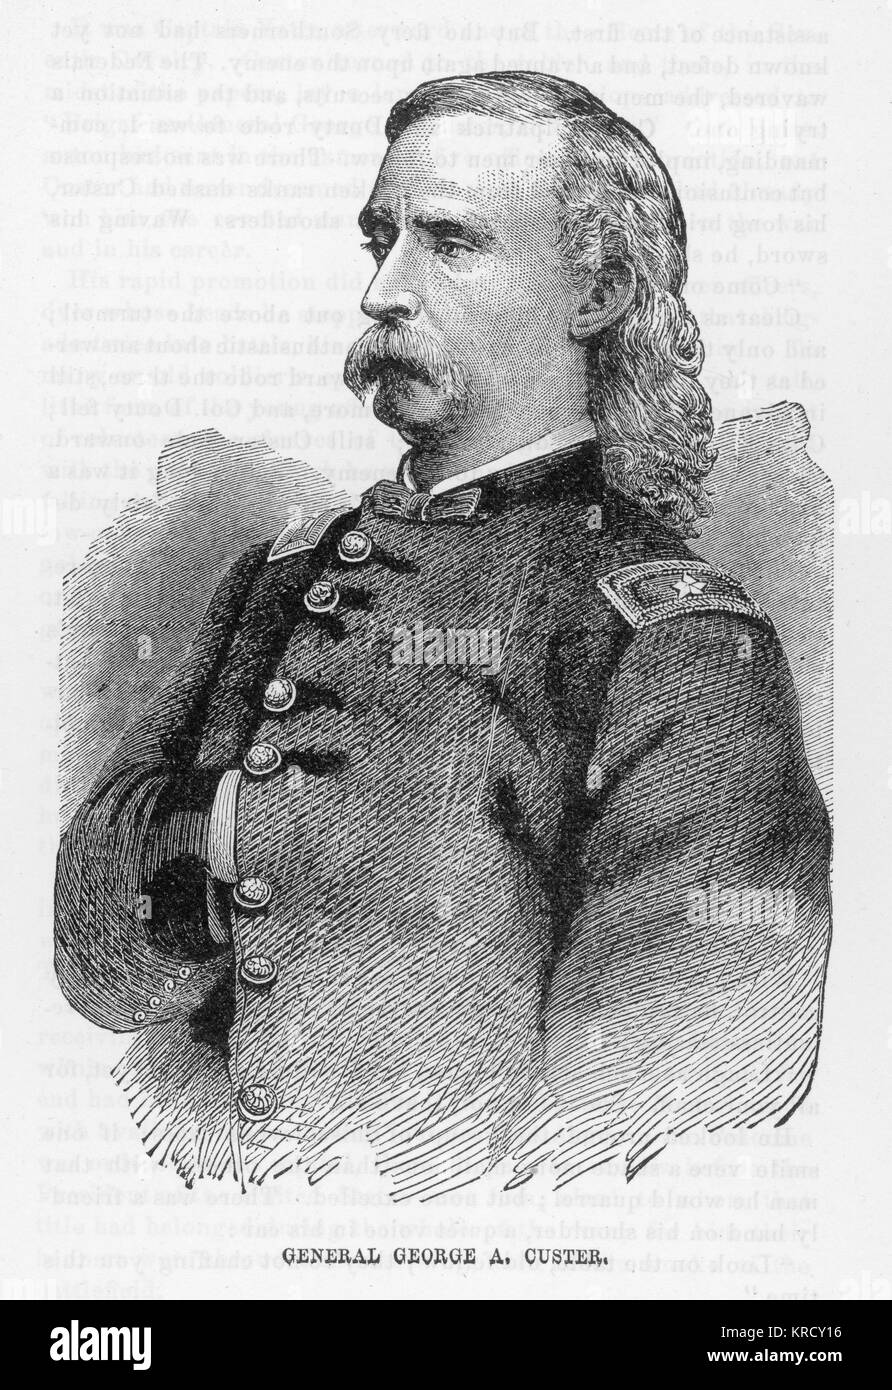 GEORGE A CUSTER  American Soldier, killed at the  battle of Little Big Horn.       Date: 1839-1876 - Stock Image